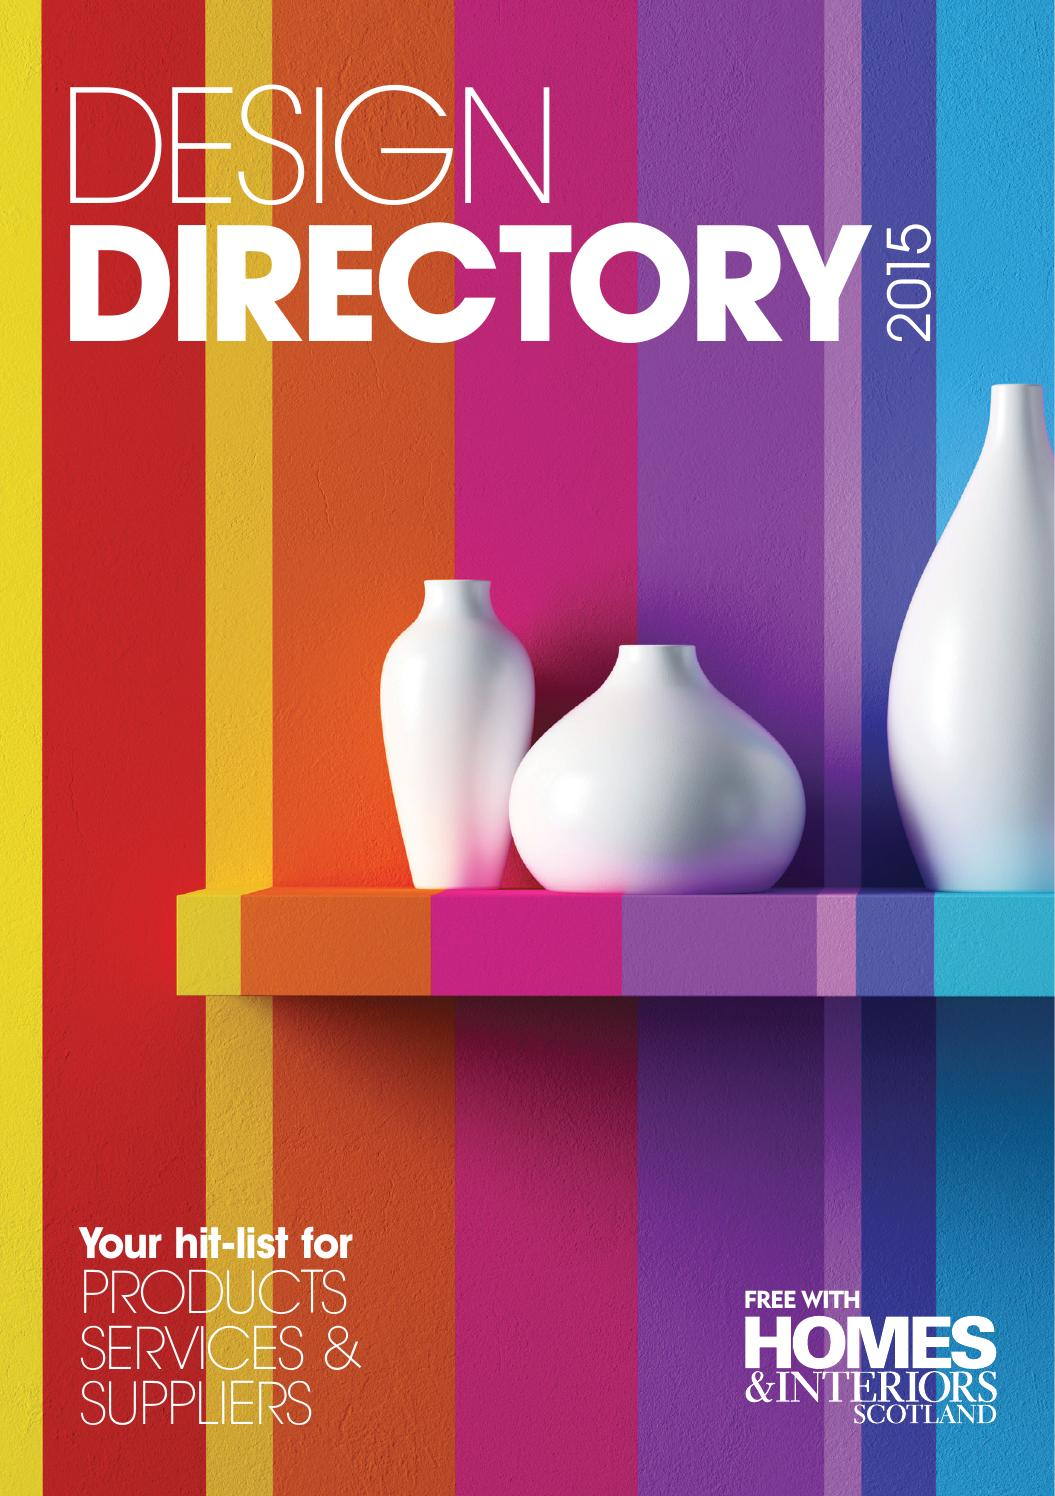 Design directory 2015 by peebles media group issuu for Designer directory